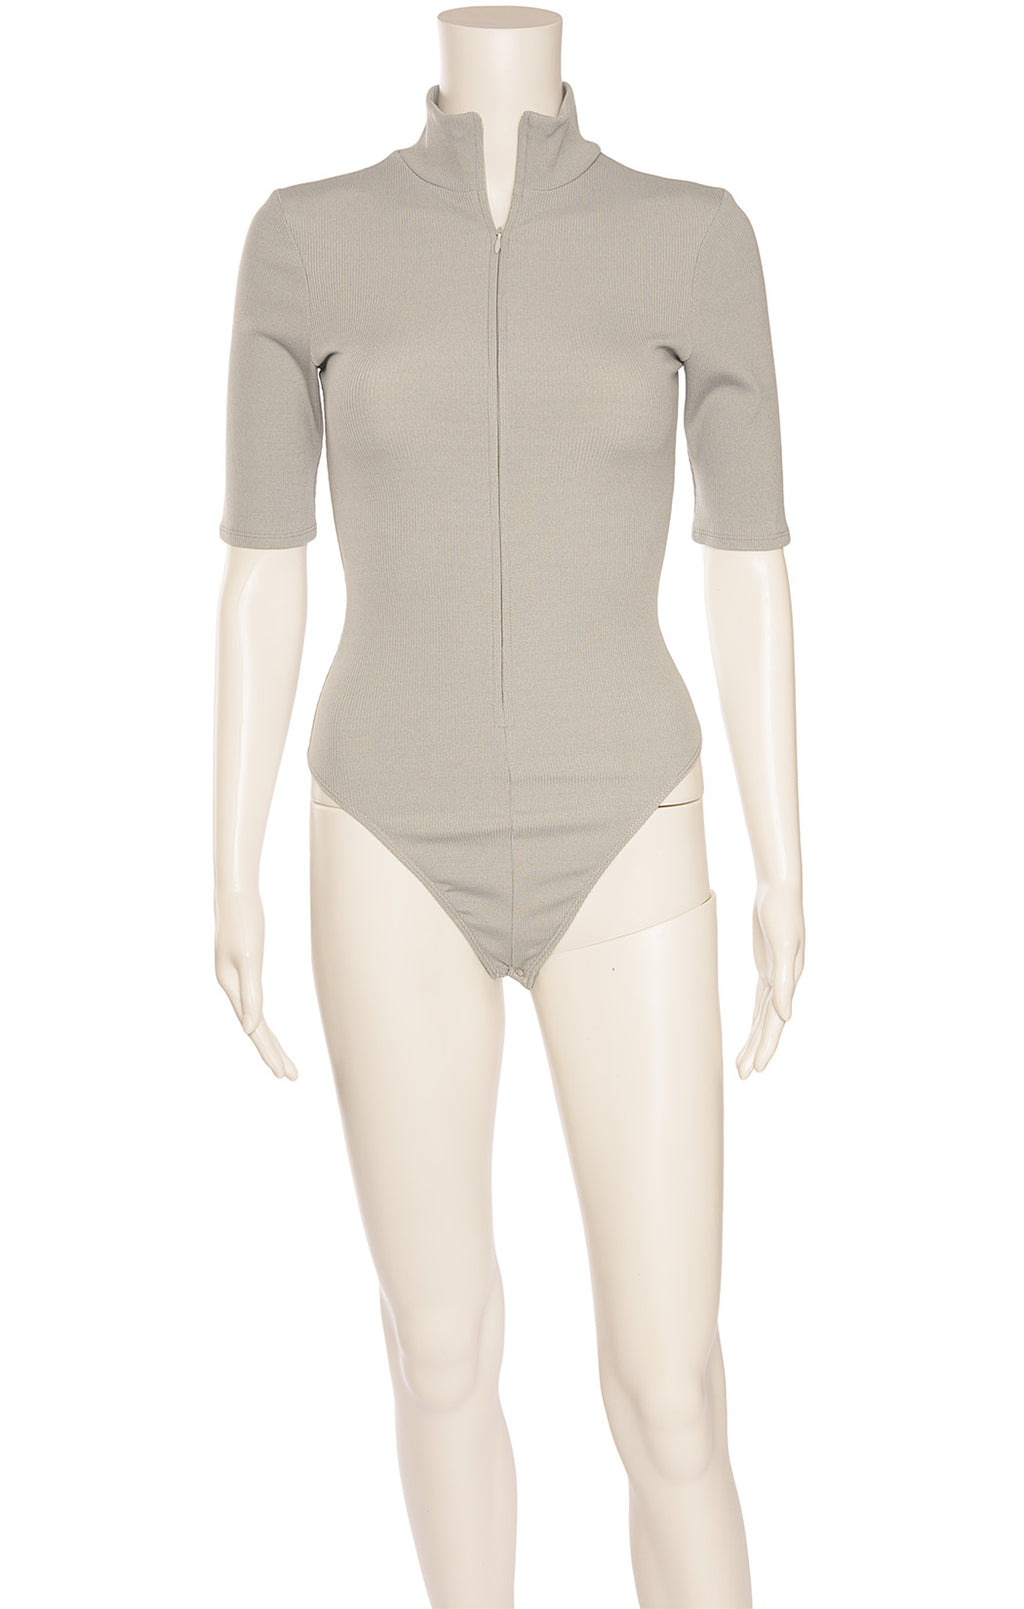 Front view of GOOD AMERICAN  Bodysuit Size: Small - Medium